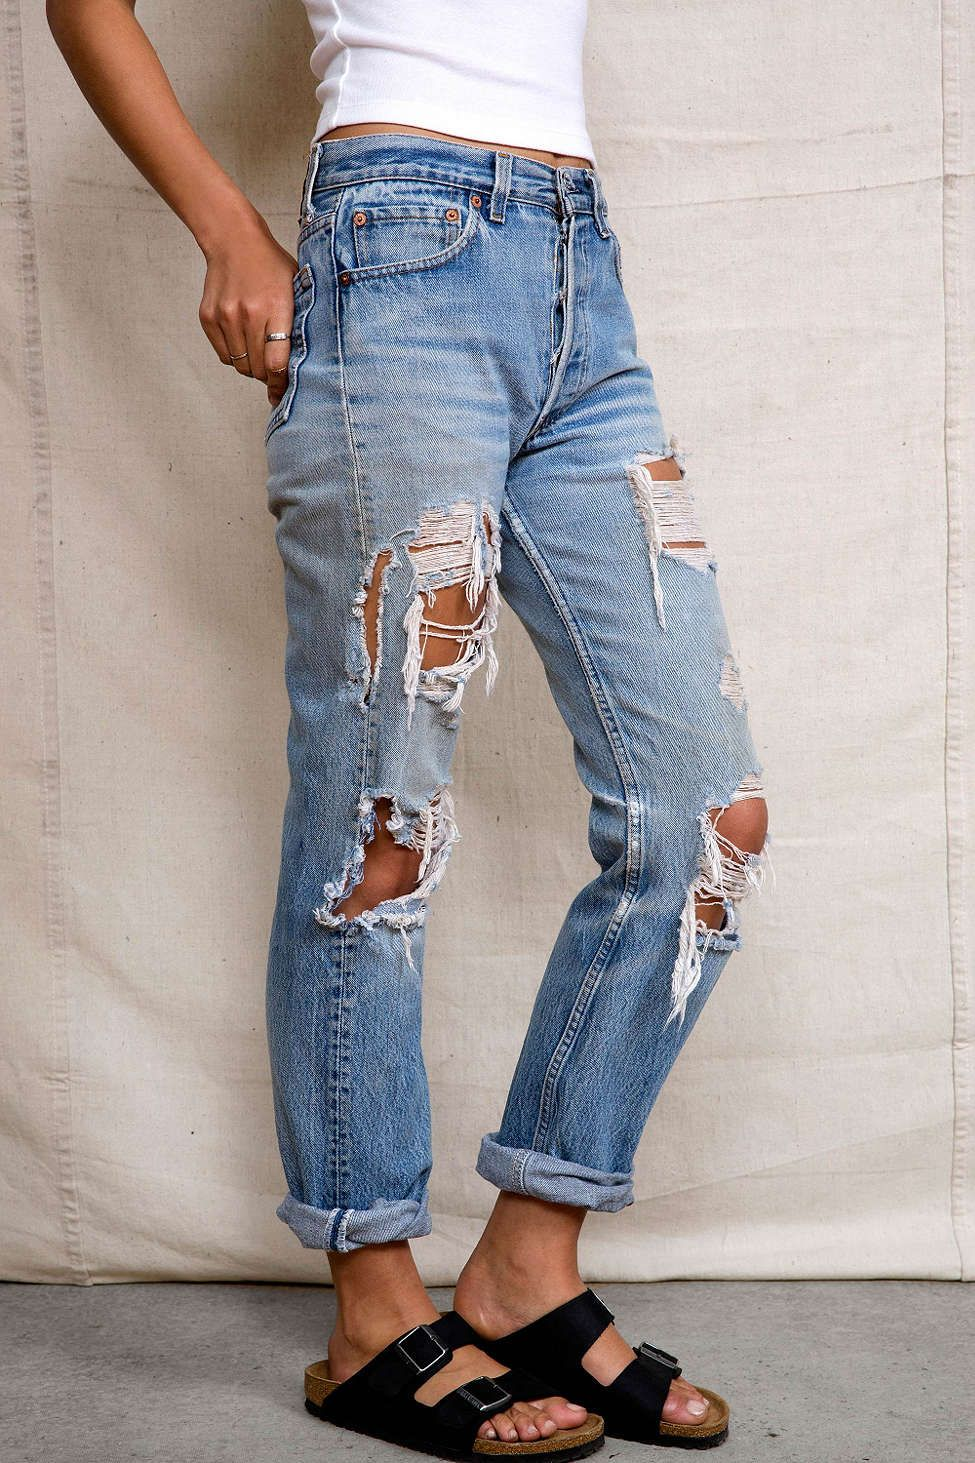 49f1ec881595b Urban Renewal Super-Destroyed Levis Jean - Urban Outfitters